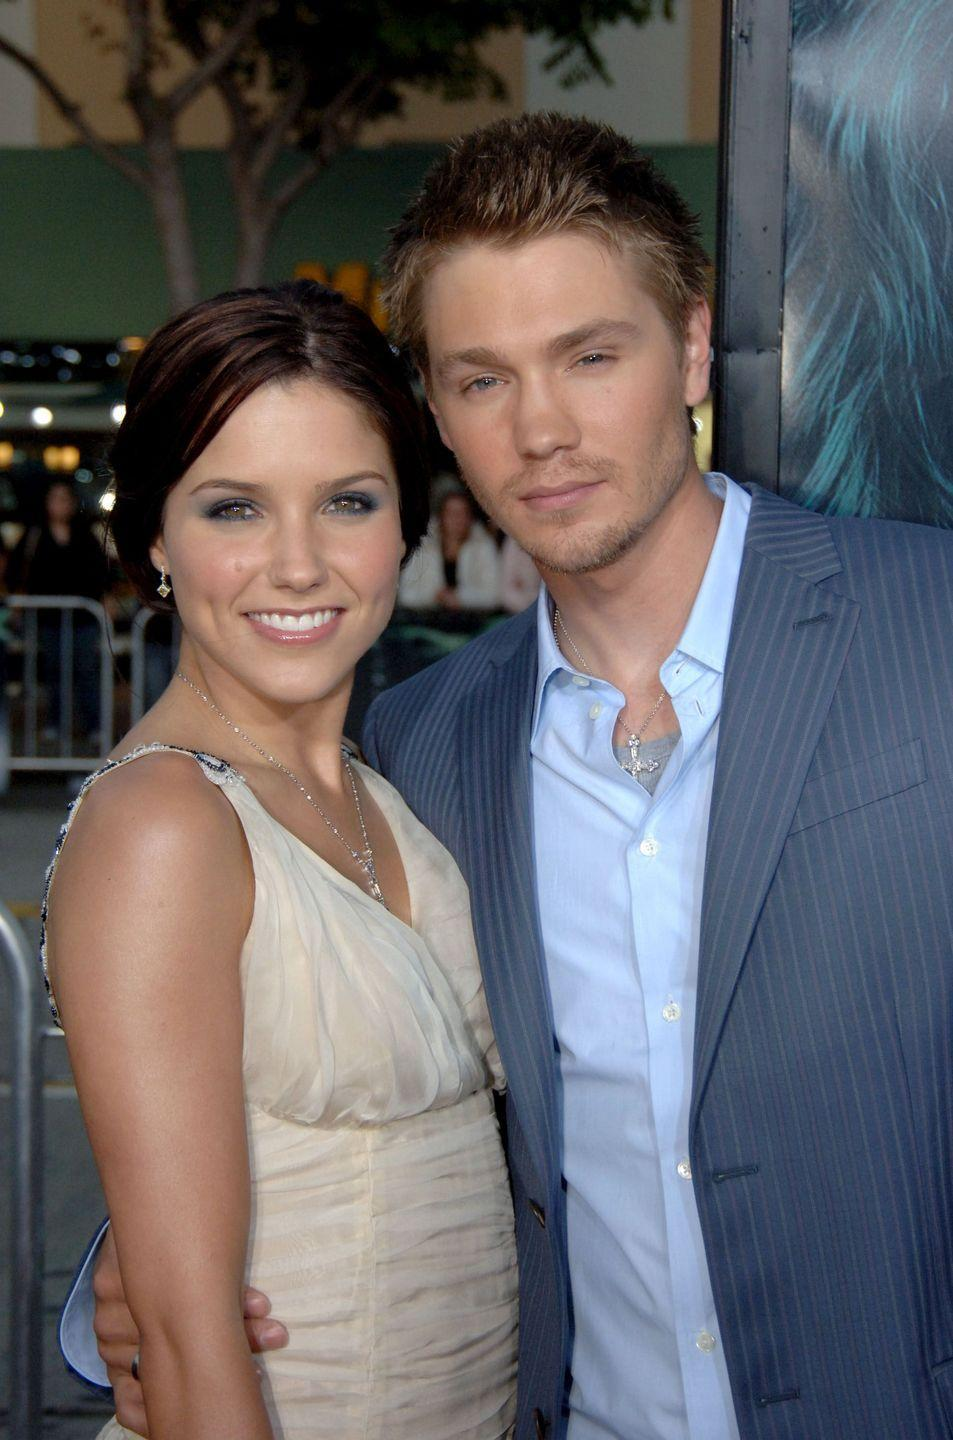 "<p>Appearing on <em><a href=""https://www.huffingtonpost.com/2014/01/07/sophia-bush-chad-michael-murray_n_4556731.html"" rel=""nofollow noopener"" target=""_blank"" data-ylk=""slk:Watch What Happens Live With Andy Cohen"" class=""link rapid-noclick-resp"">Watch What Happens Live With Andy Cohen</a></em>, Sophia said of her ex-husband Chad (they married and divorced in 2005), ""My mother once said to me that if you don't have anything nice to say, not to say anything at all."" She later added that marrying her <em>One Tree Hill</em> co-star was a bad idea. ""For me, my job is my priority, and so it really helped me just let go of it and be like, 'Look, at the end of the day, we were two stupid kids who had no business being in a relationship in the first place.'""</p>"